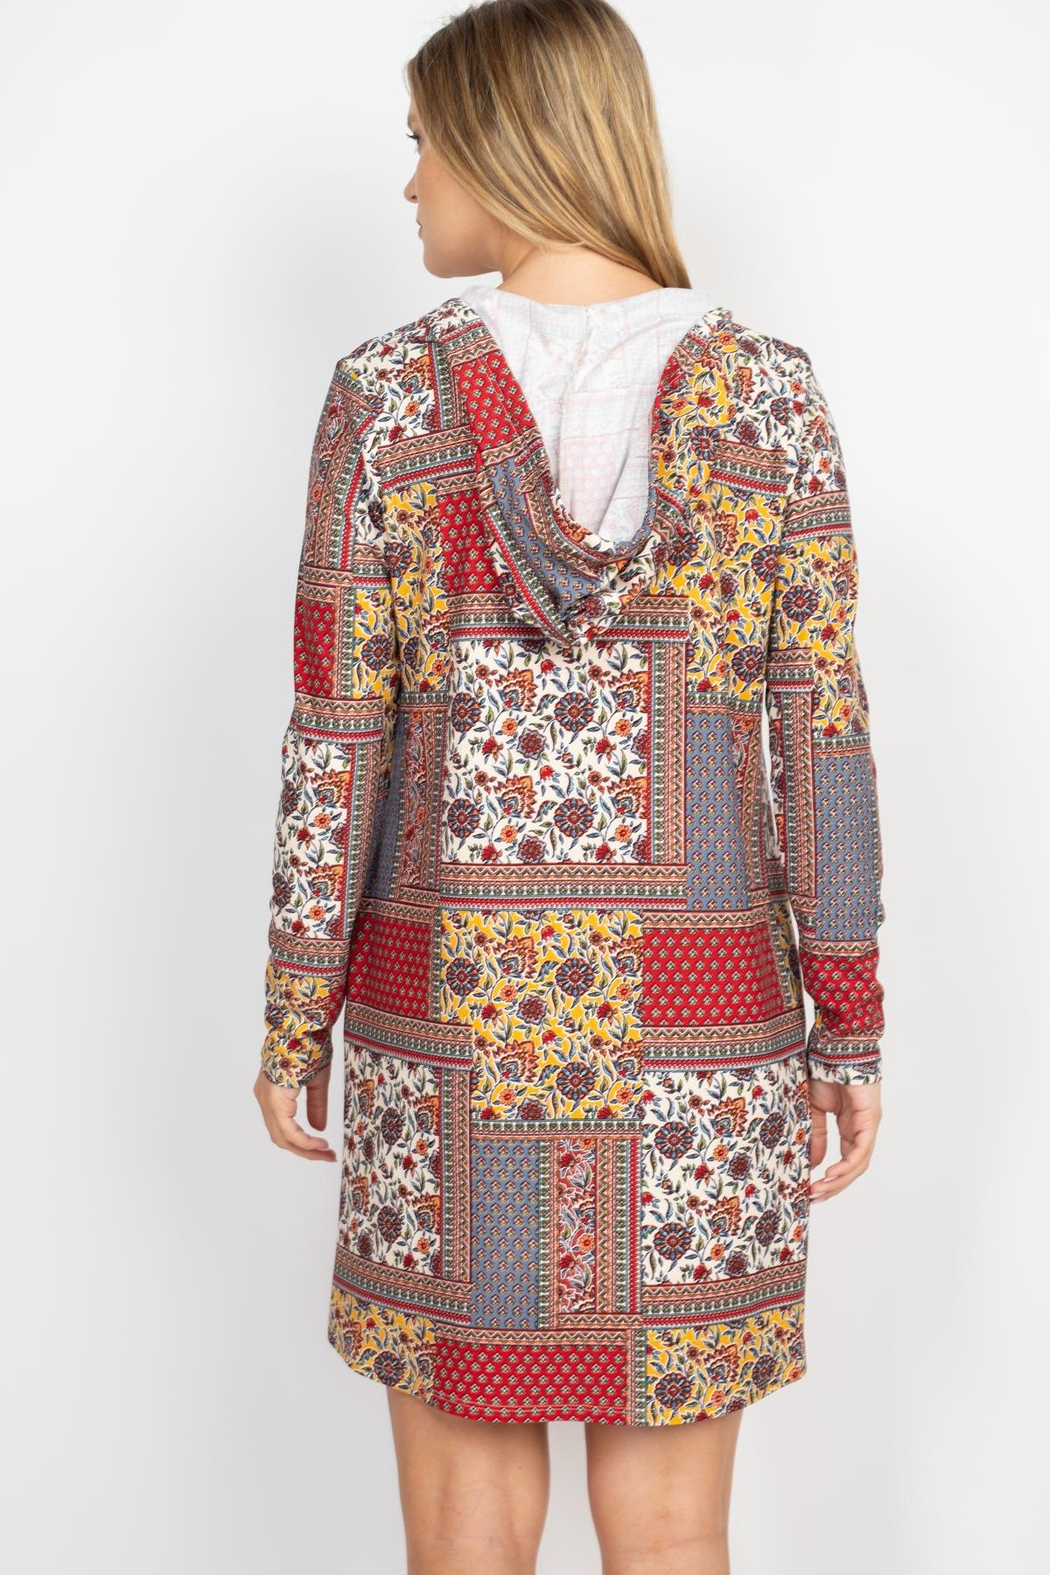 Riah Fashion Long-Sleeve-Ethnic-Floral-Self-Tie-Hoodie-Dress - Back Cropped Image